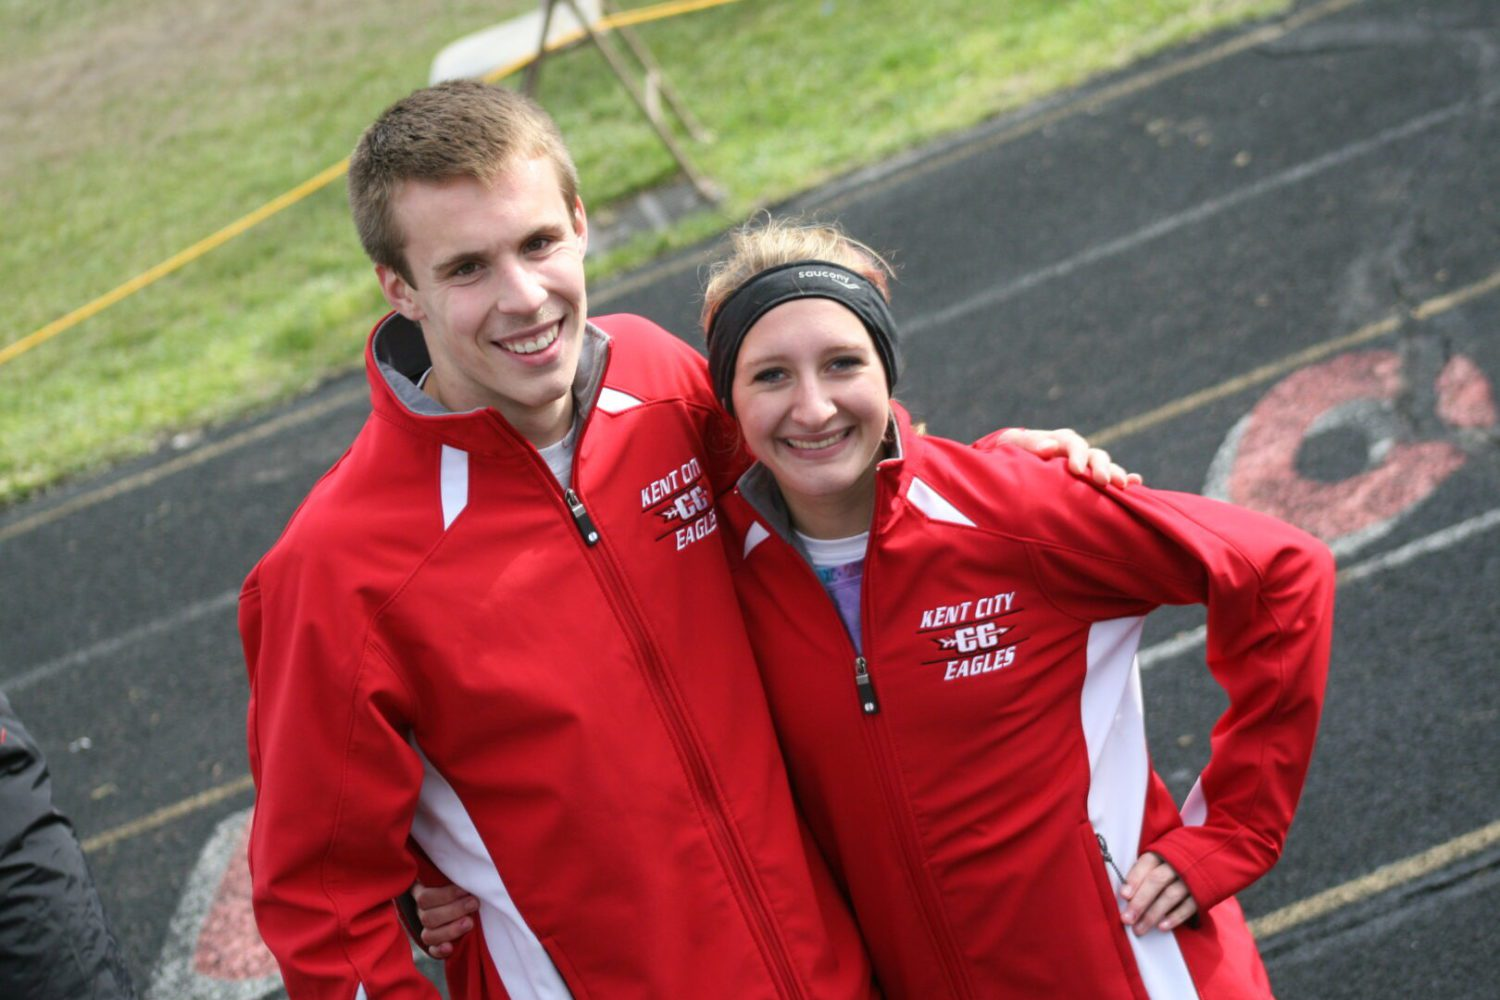 Two Kent City regional champs have their sights set on bigger goals at Saturday's cross country state finals